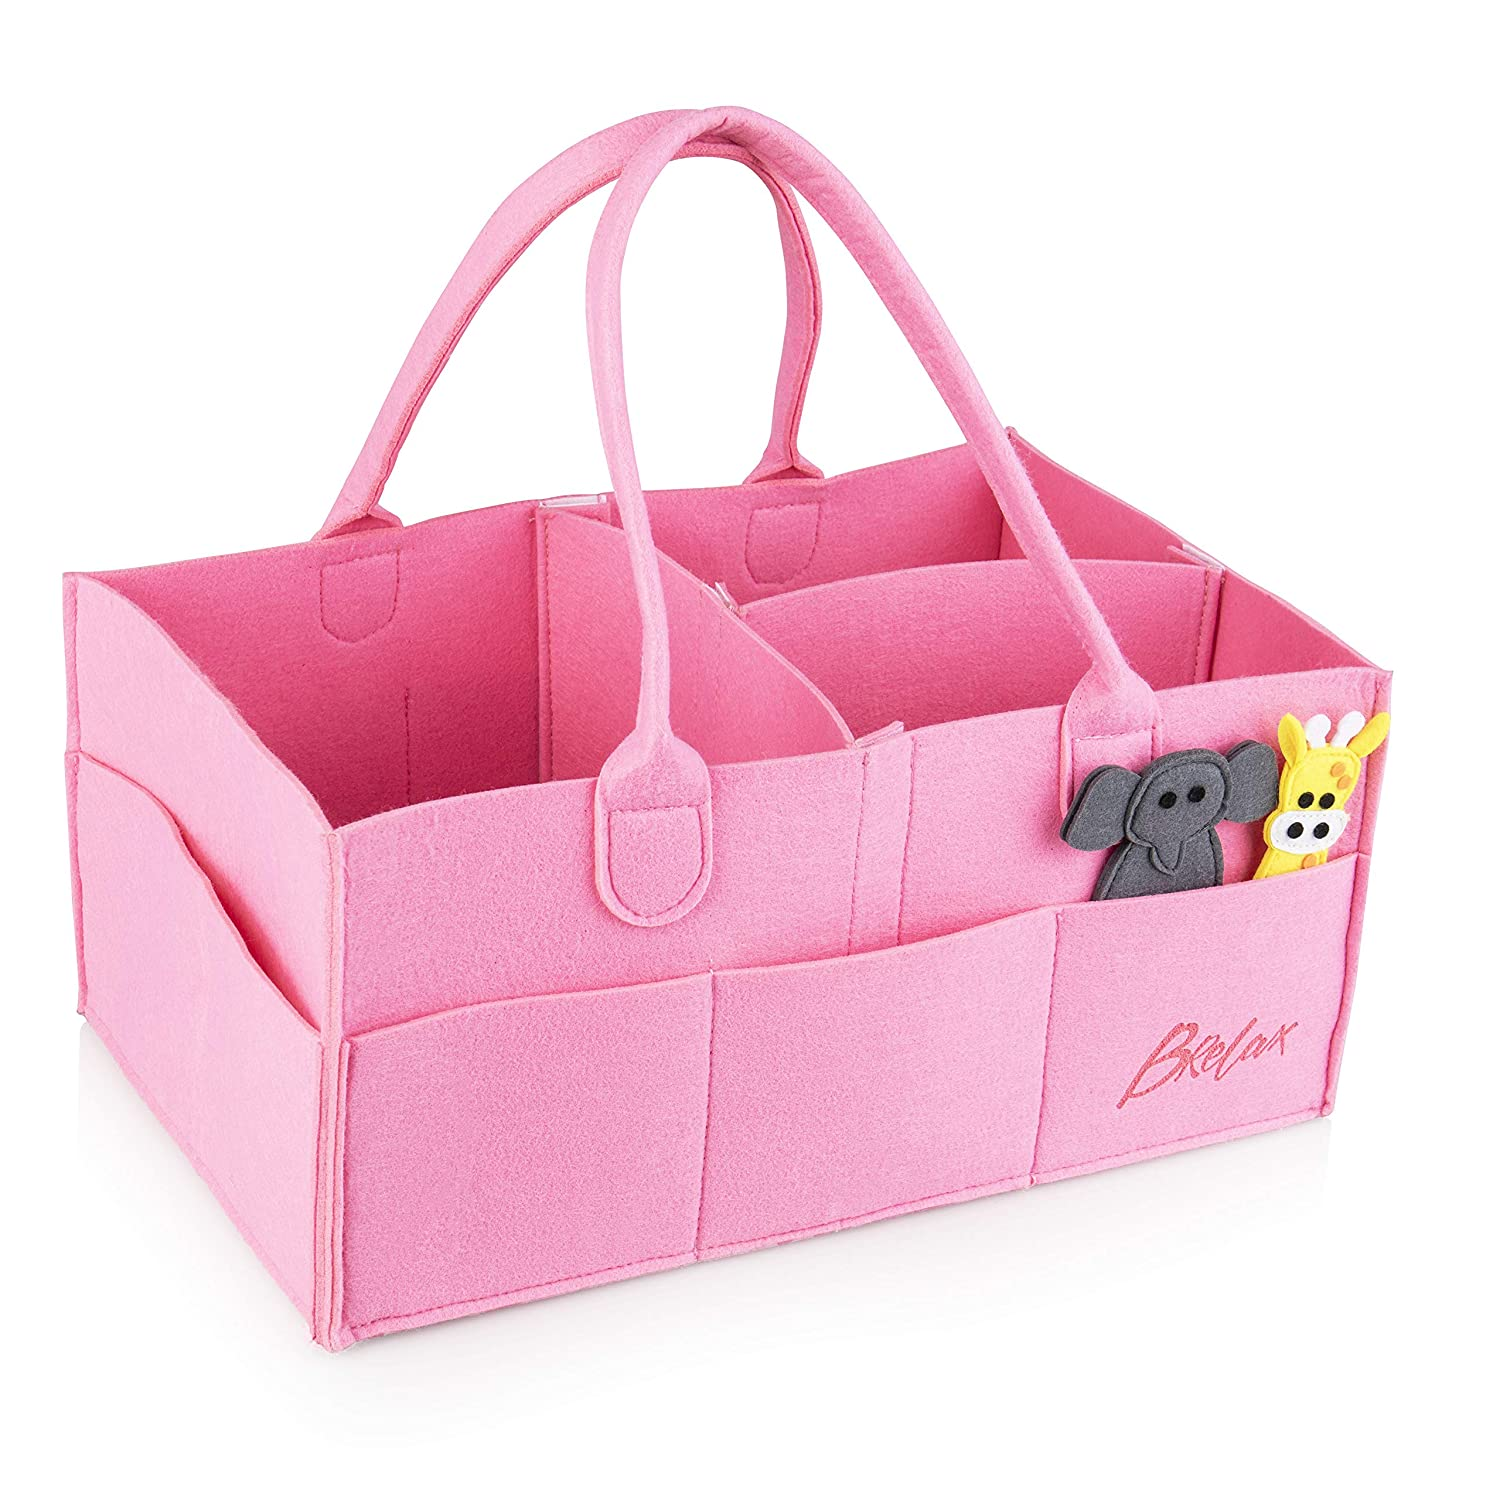 Baby Diaper Storage X-Large Pink Caddy Organizer: Changing Table and Nursery Bag Brelax